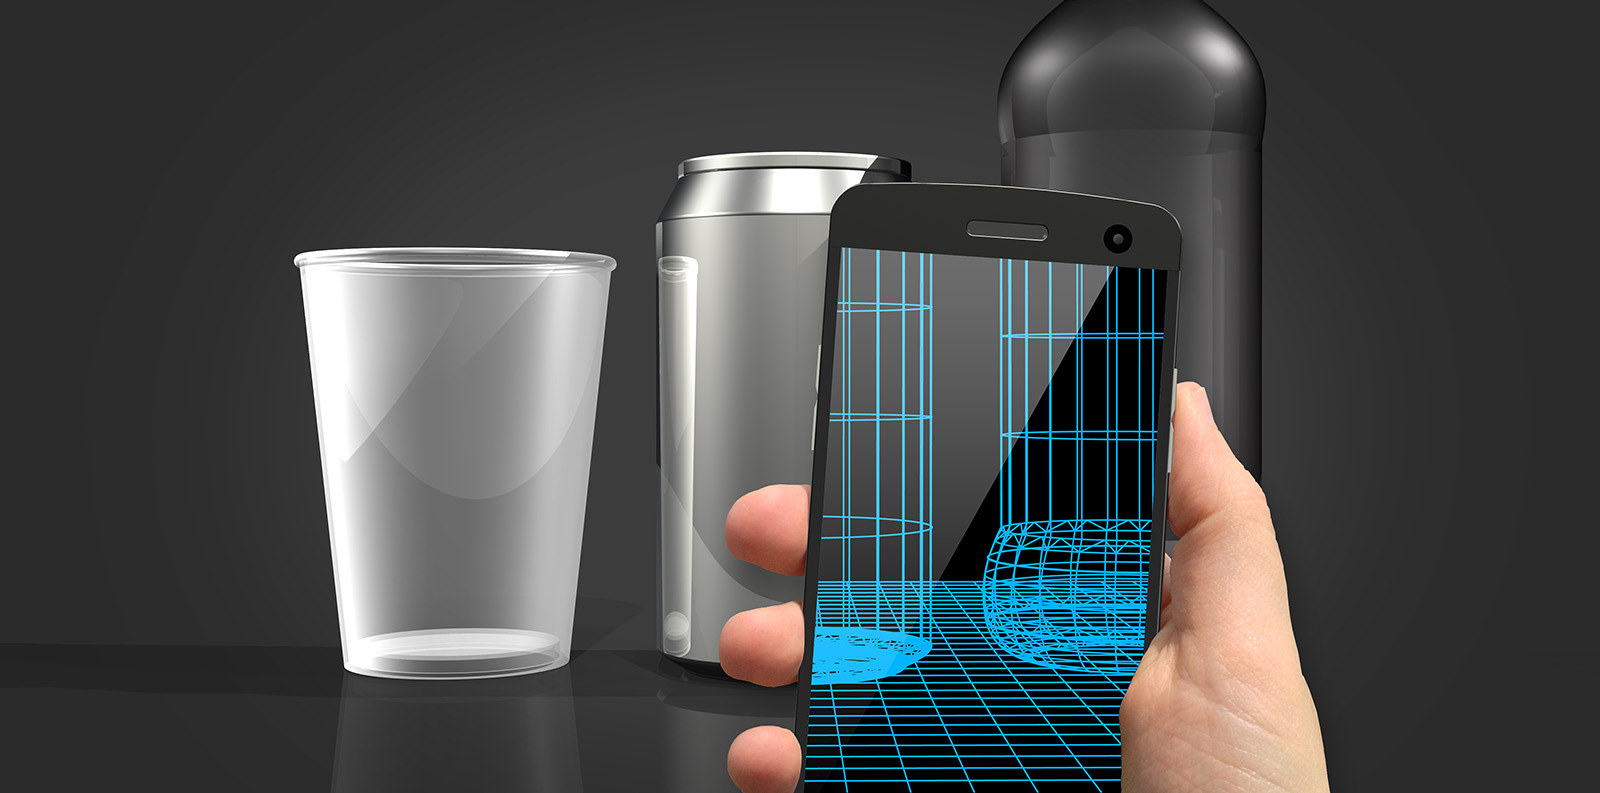 scanning objects with a smartphone